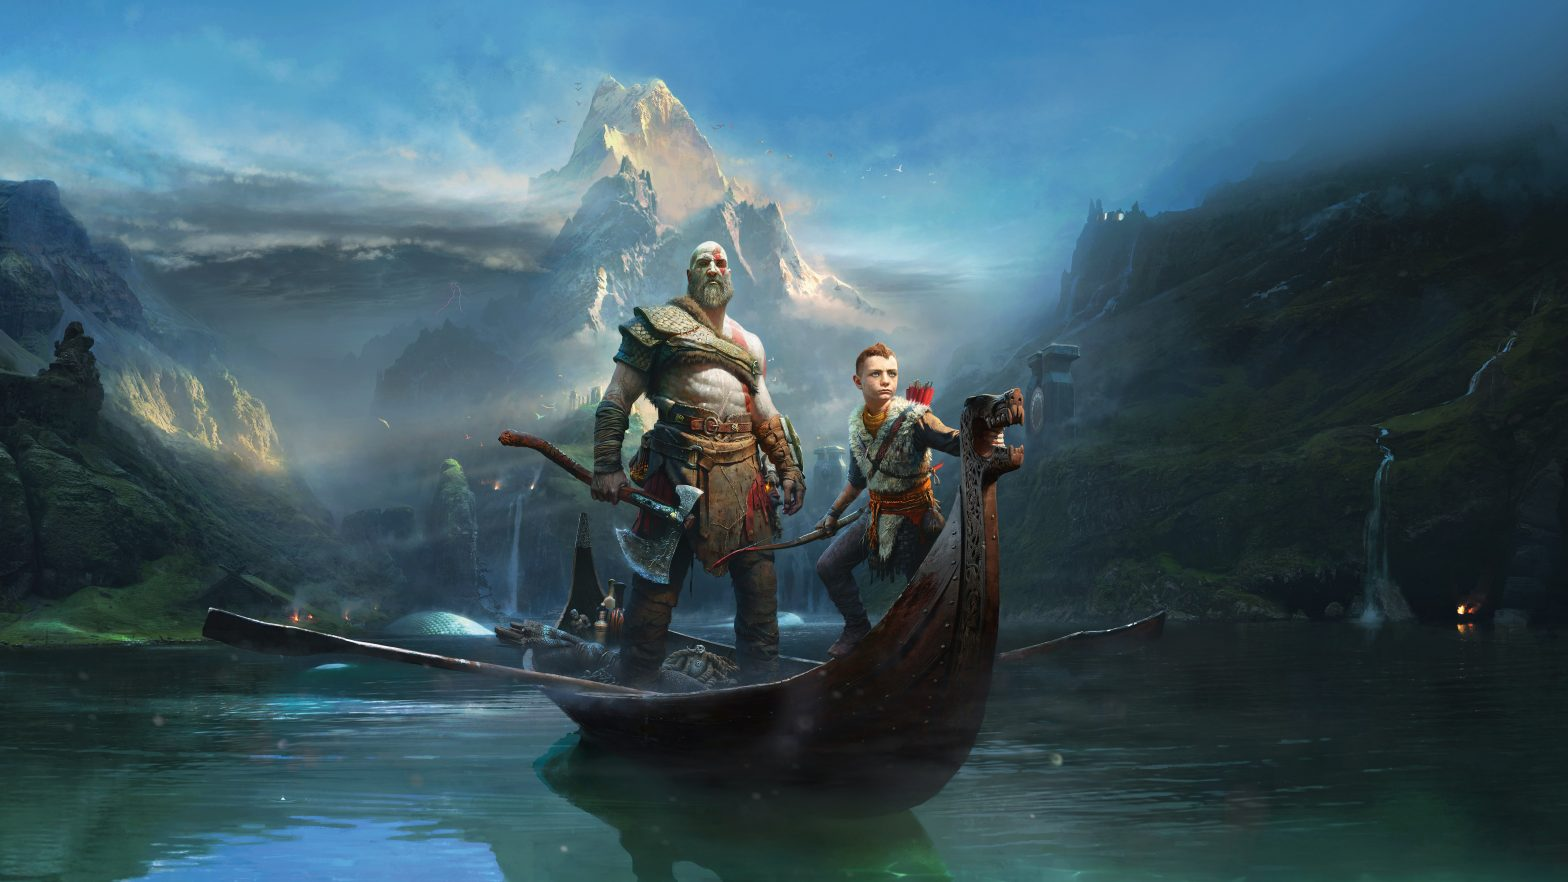 Kratos and Atreus on their boat in God of War